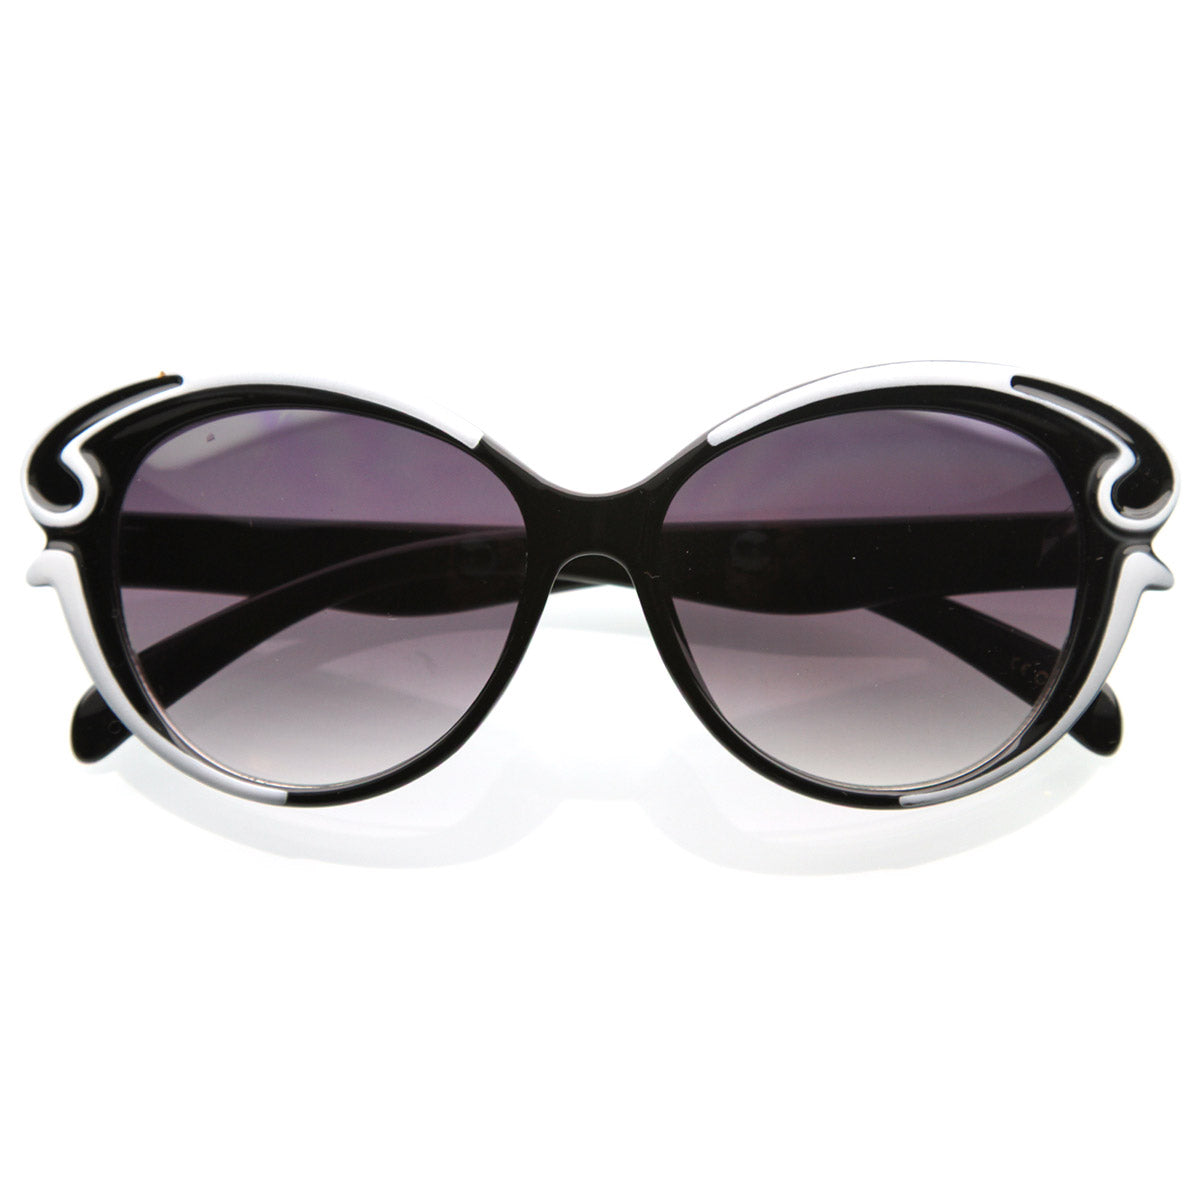 Designer Inspired Butterfly Shape Baroque Style Oversized Fashion Sung Sunglass La